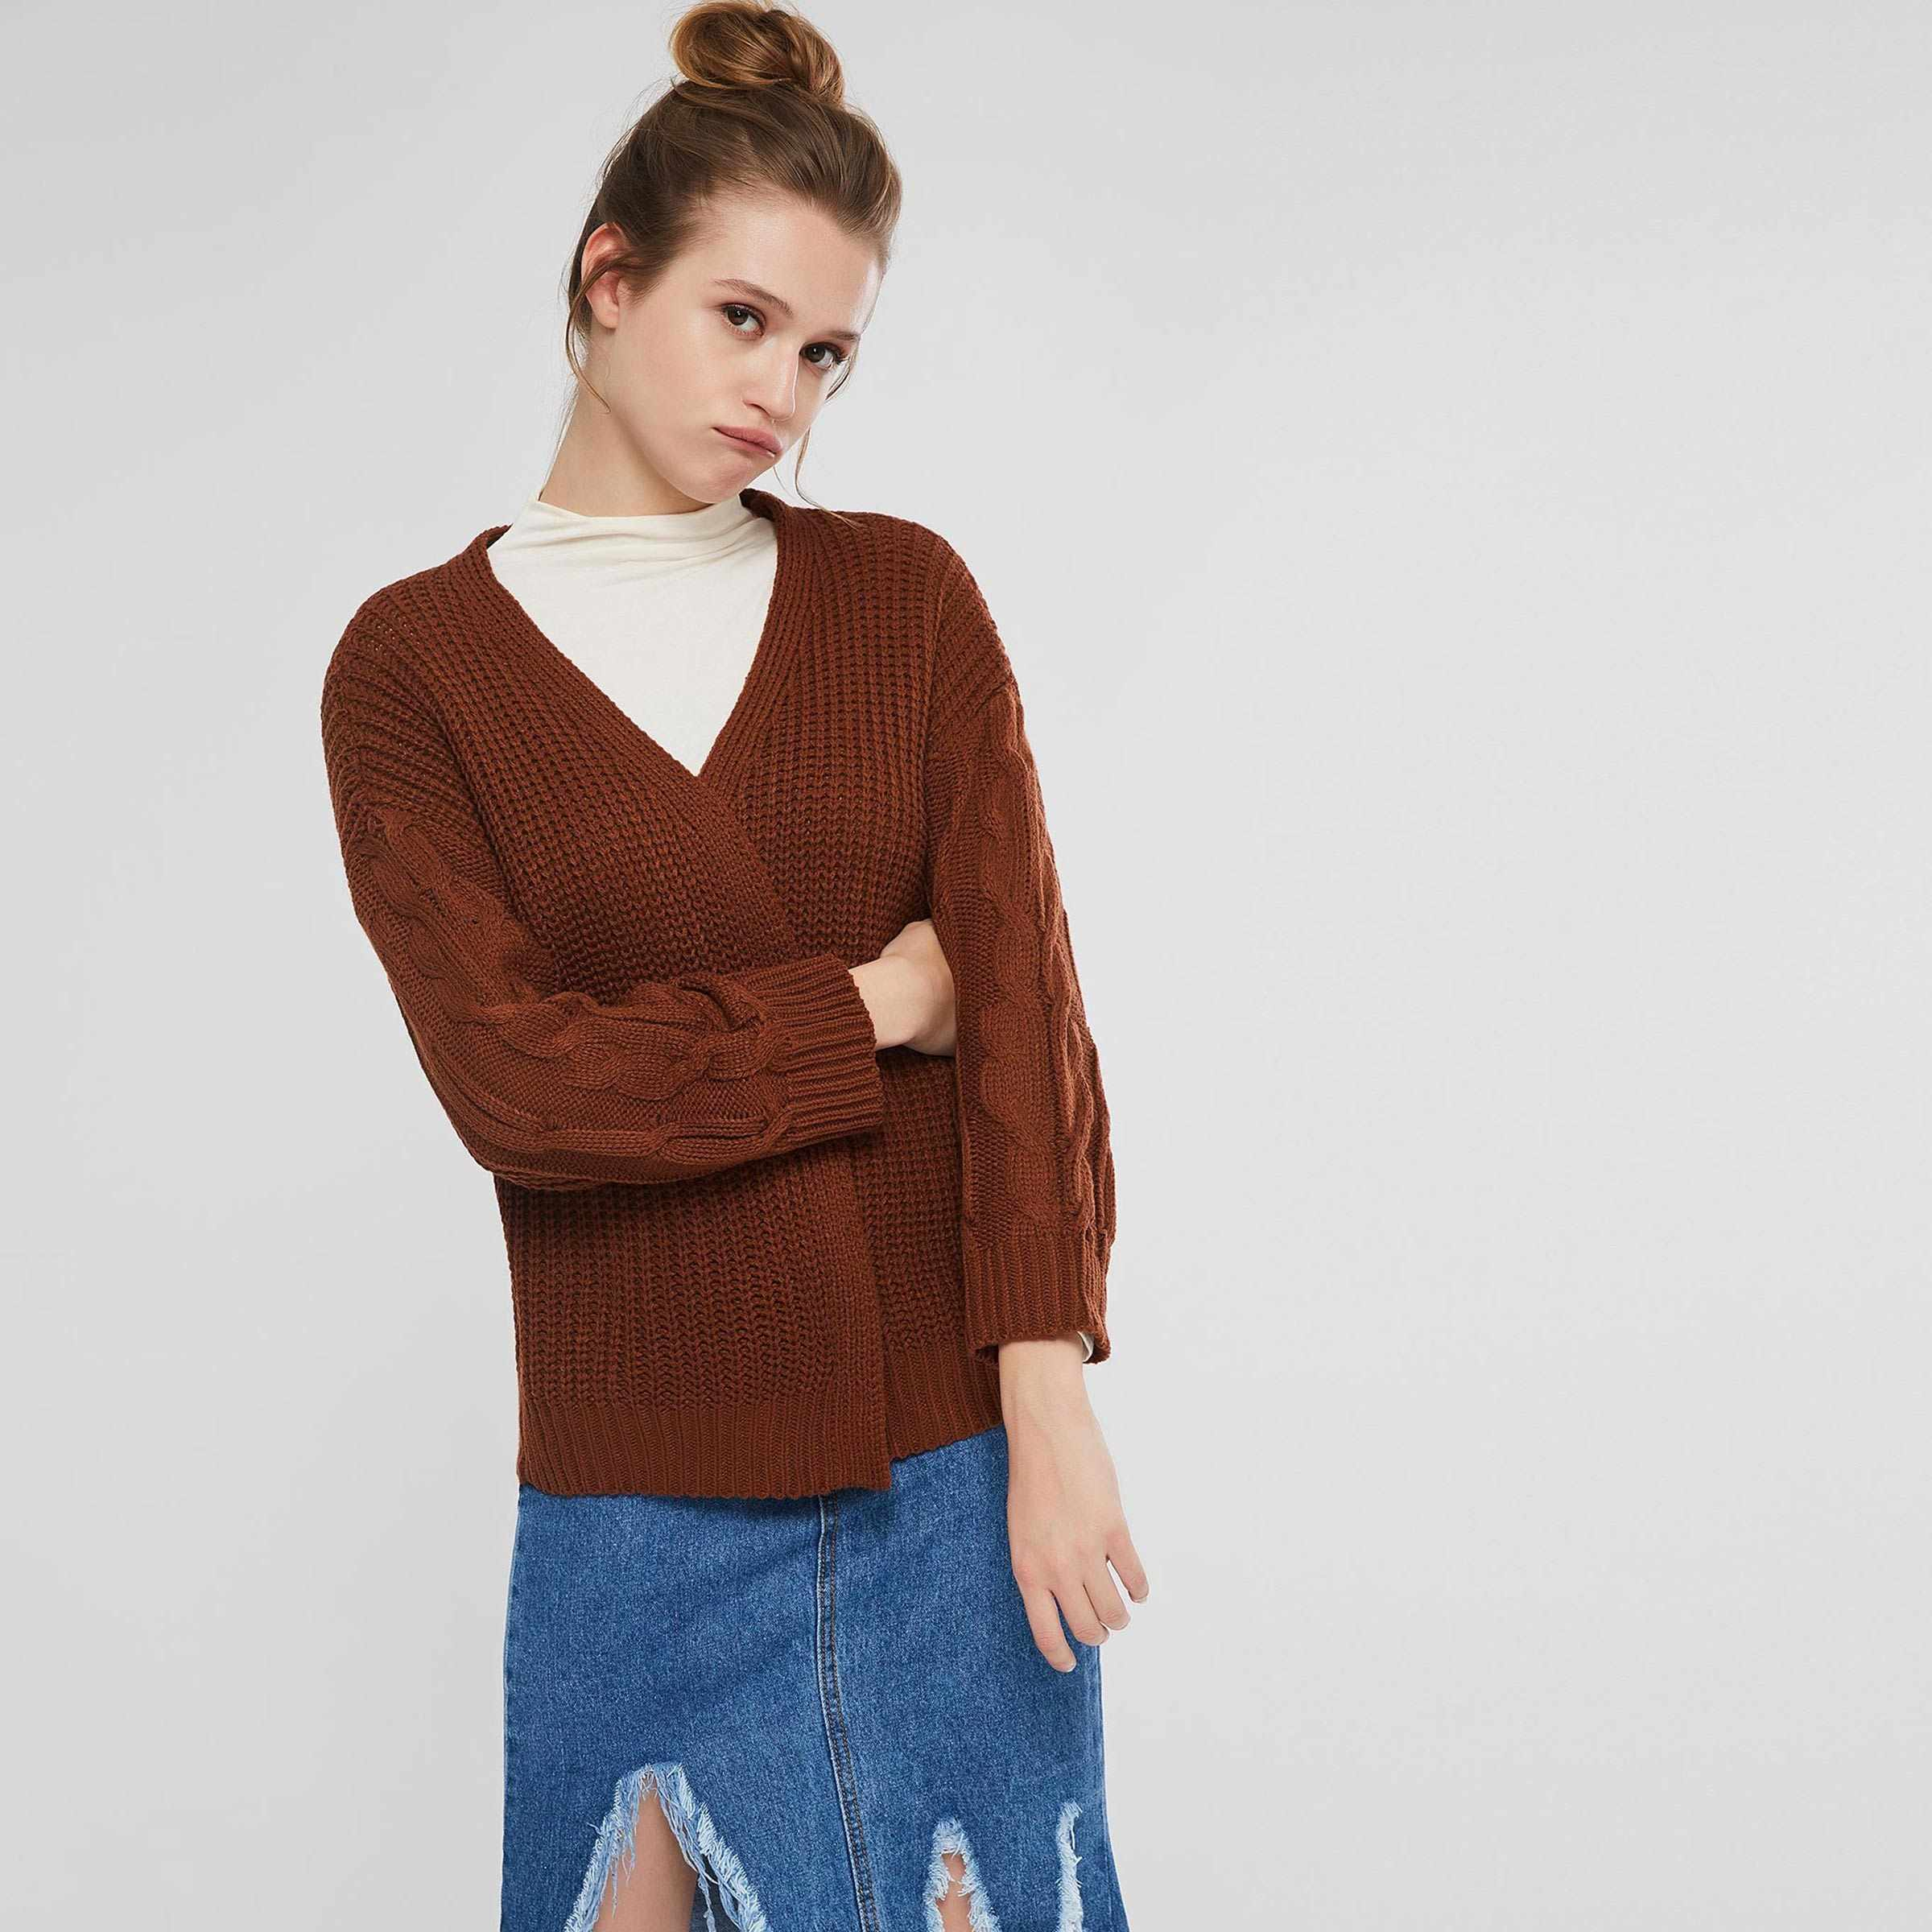 8f742b429 Sisjuly Girl Loose Dark Brown Cable Knit Cardigan Sweater Women Spring  Winter Preppy Style High Street